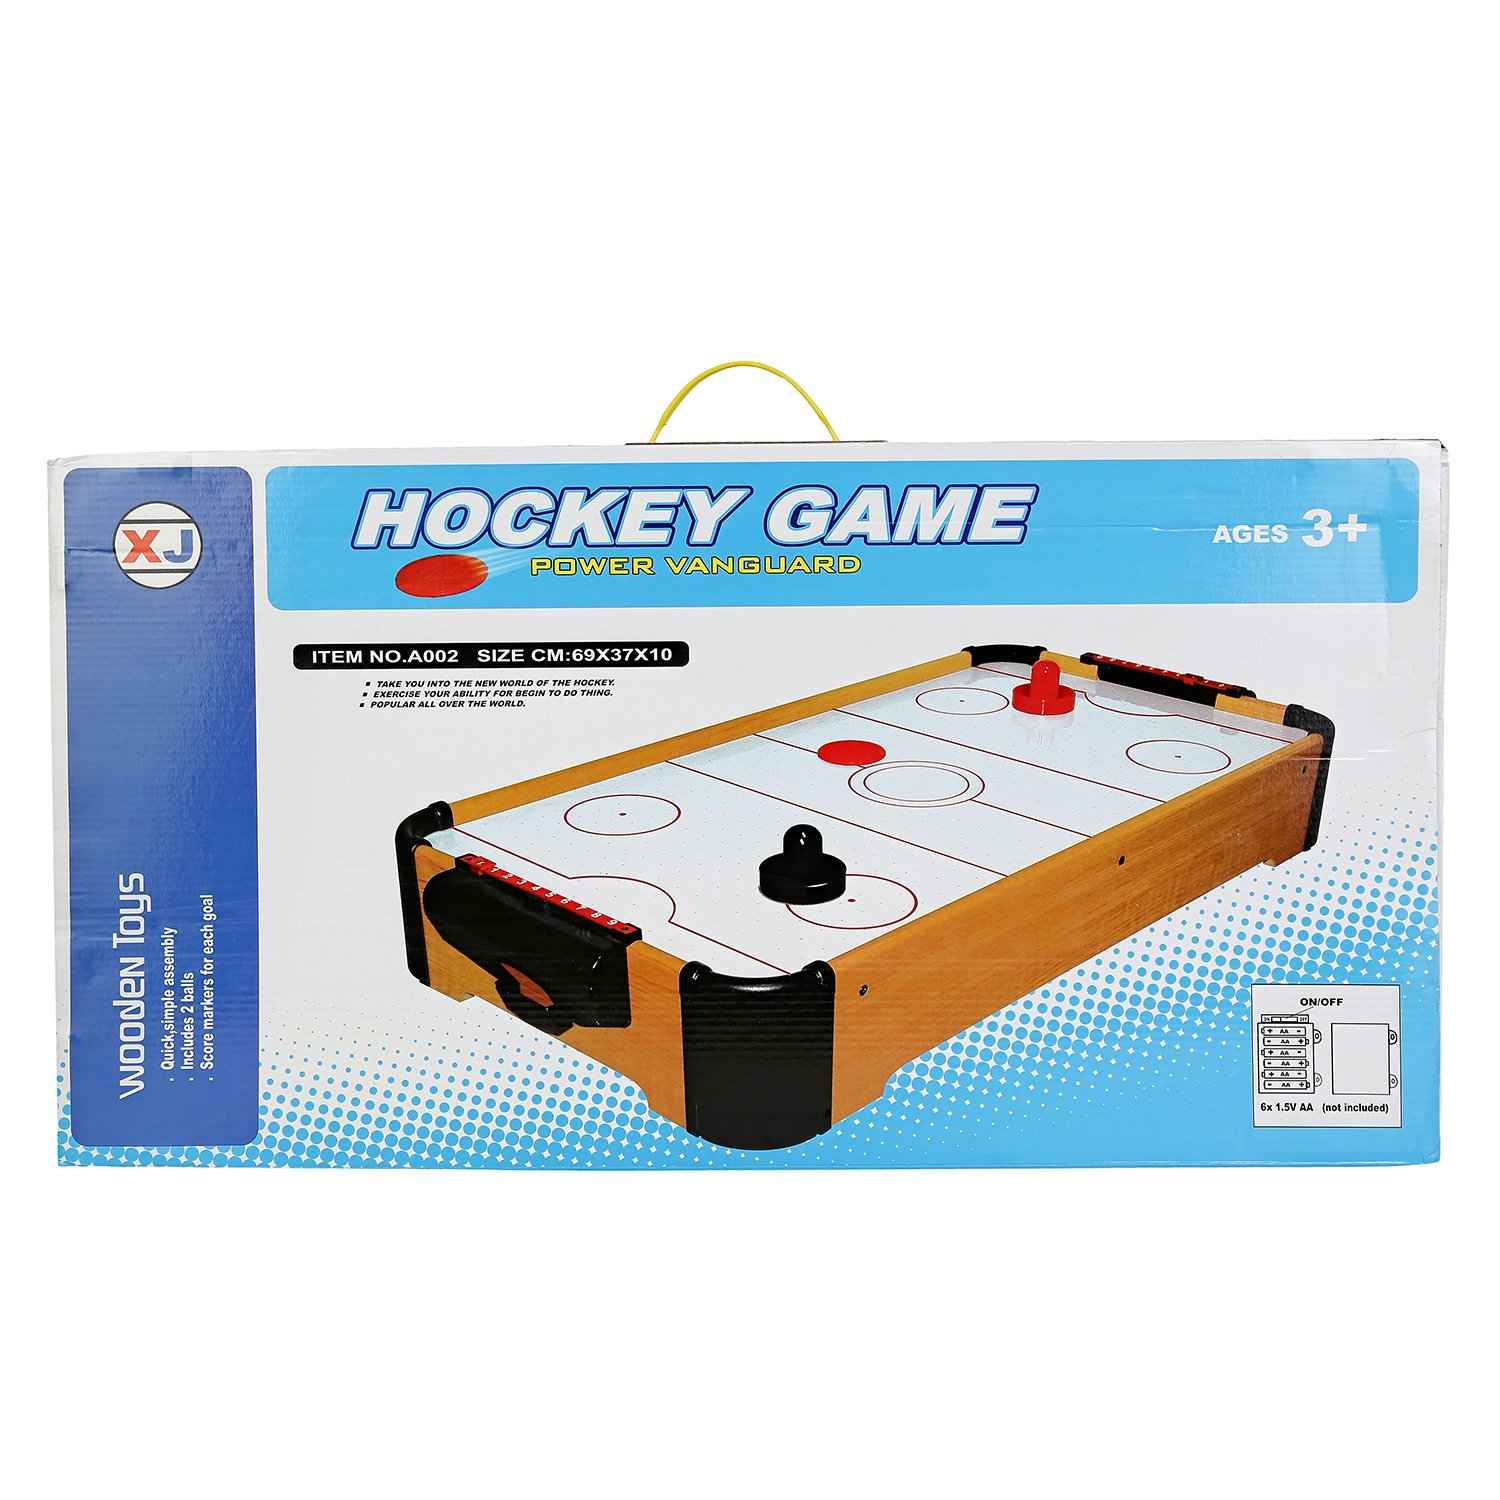 Buy Comdaq Tabletop Ice Hockey Game Toy For Kids 70cm Online At Low Prices In India Amazon In